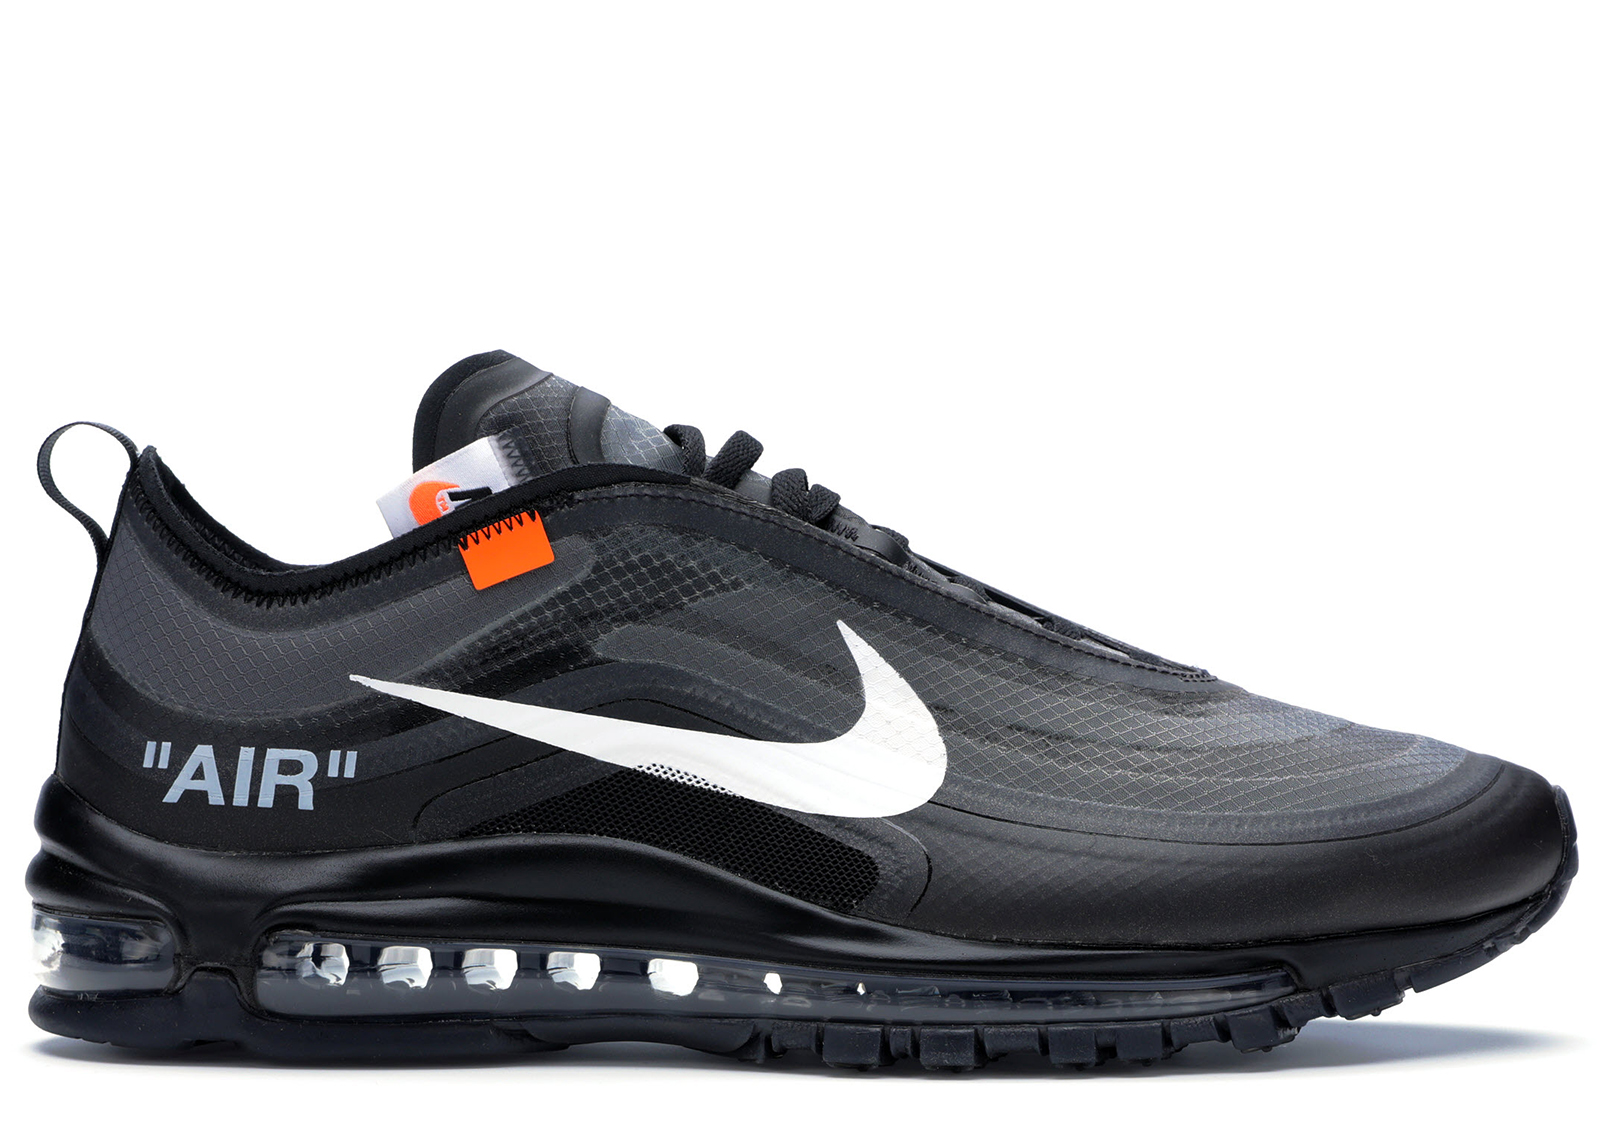 Air Max 97 Off-White Black - AJ4585-001